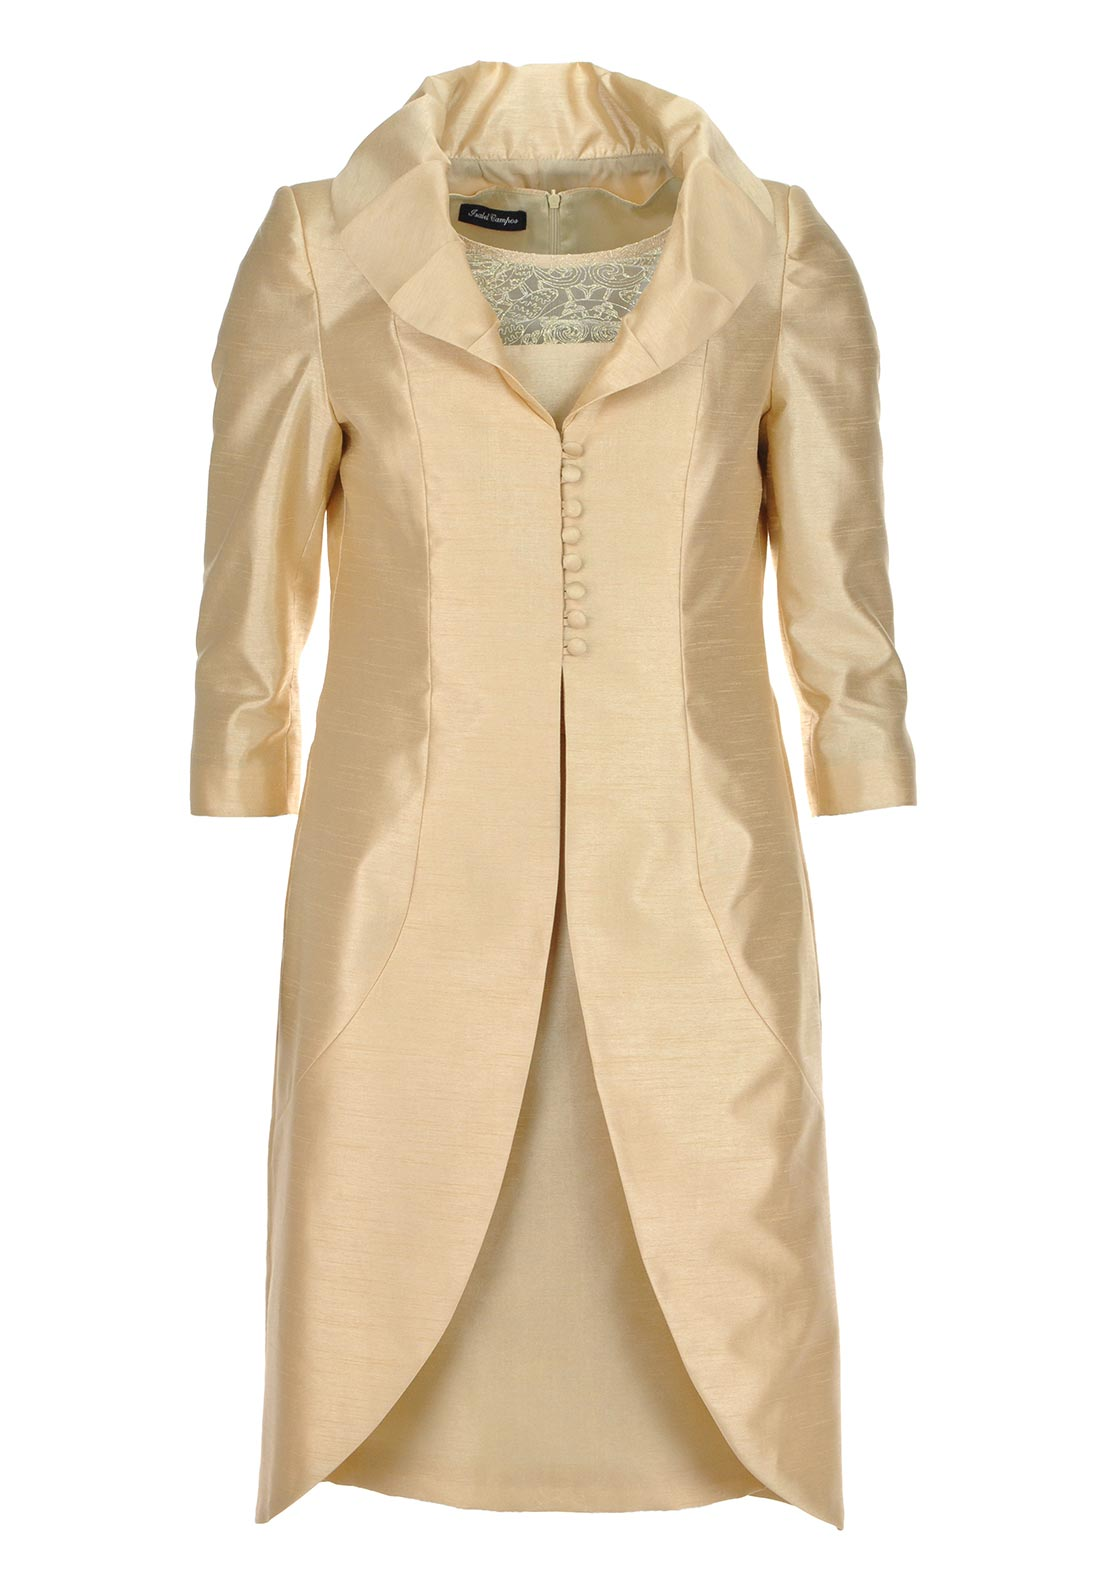 Isabel Campos Long Coat & Dress Occasion Outfit, Gold